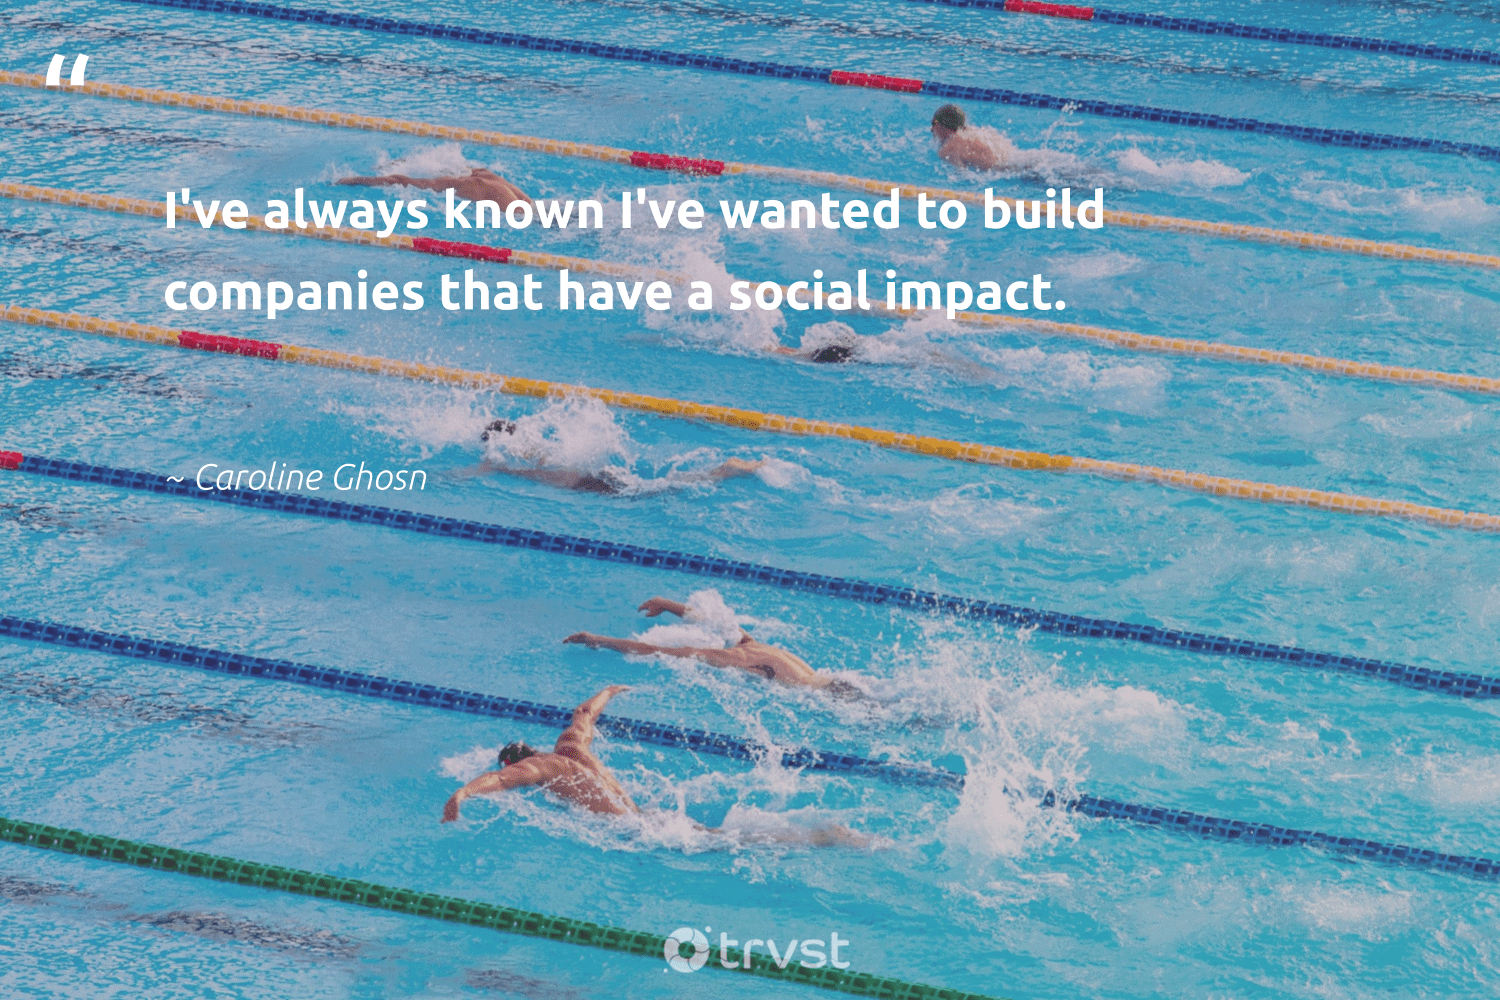 """""""I've always known I've wanted to build companies that have a social impact.""""  - Caroline Ghosn #trvst #quotes #socialenterprise #impact #socialimpact #ethicalbusiness #weareallone #ecoconscious #socent #socialchange #makeadifference #planetearthfirst"""